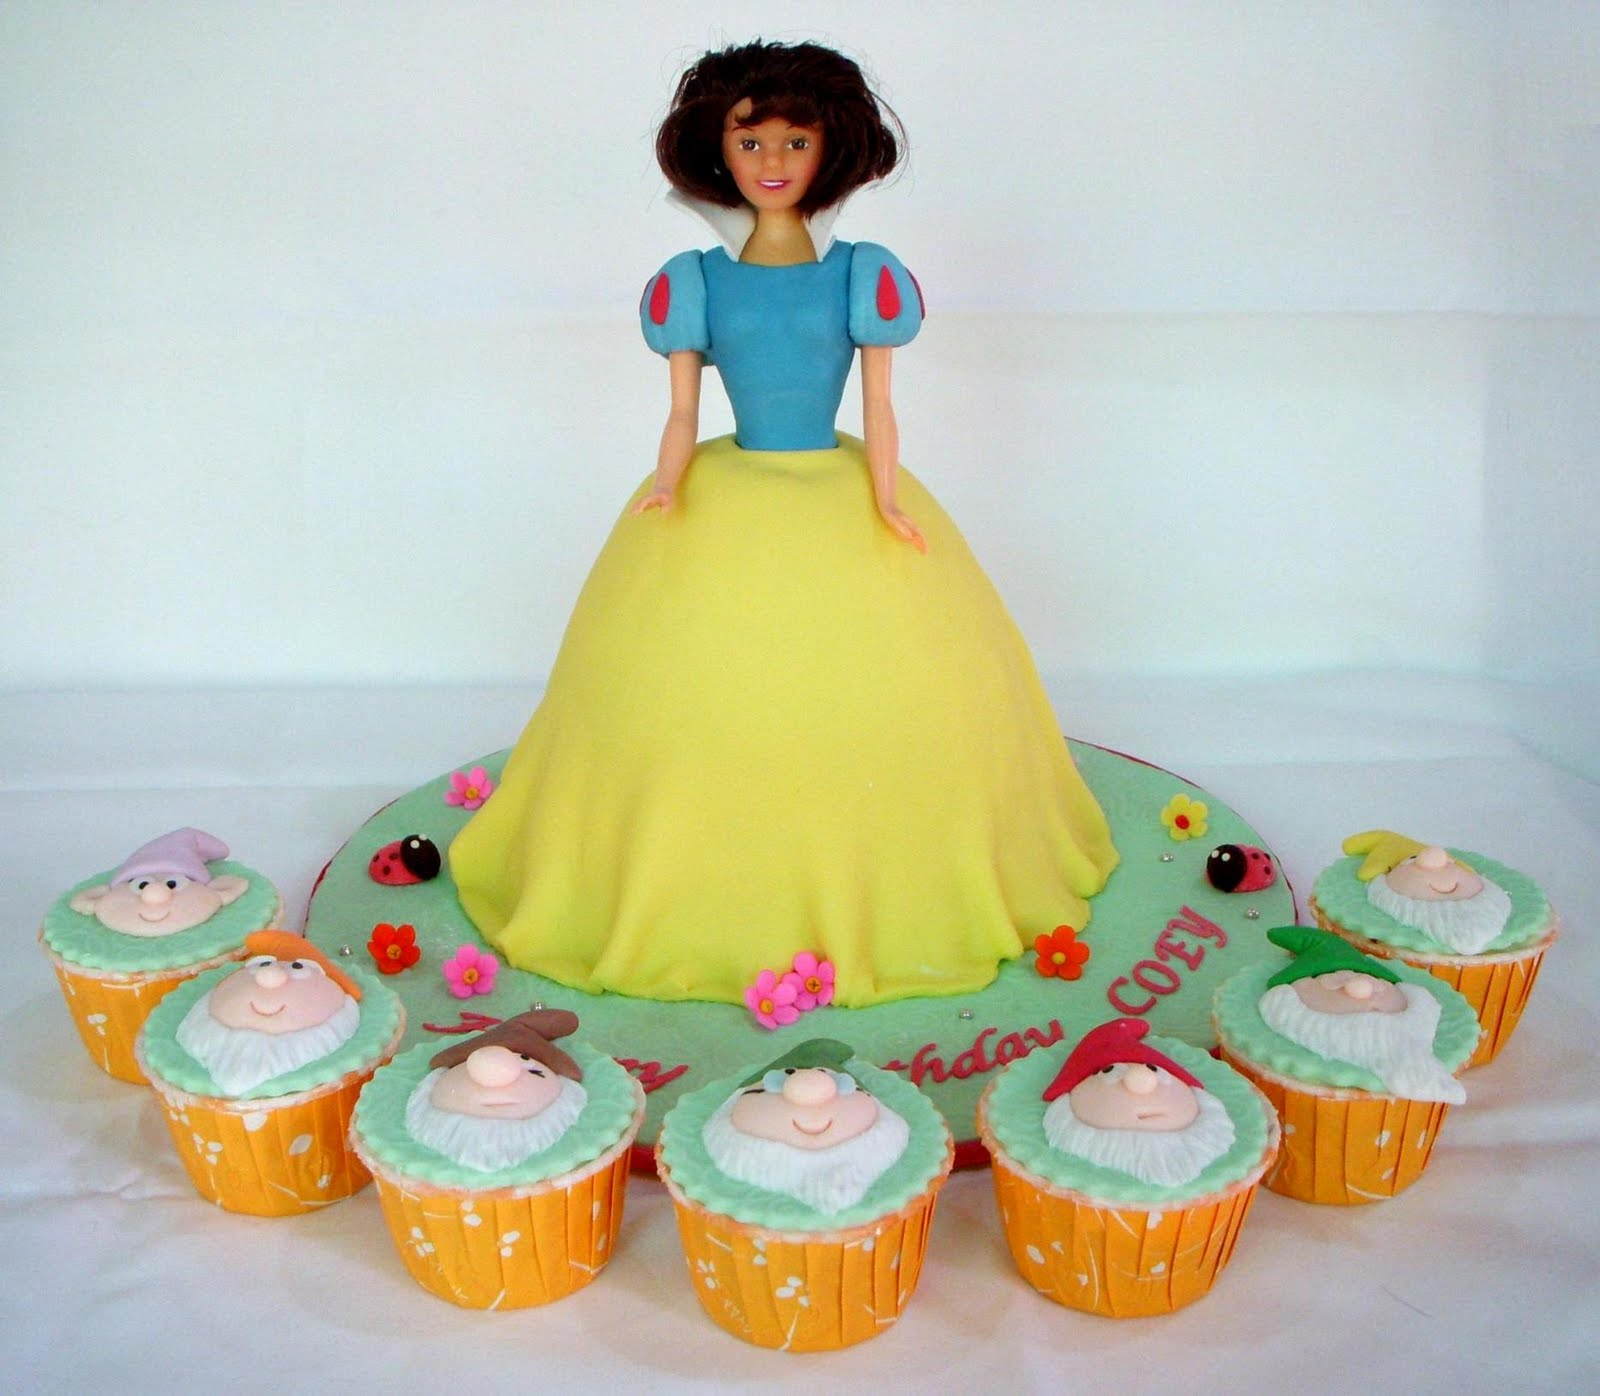 Bearylicious Cakes Snow White And Seven Dwarfs